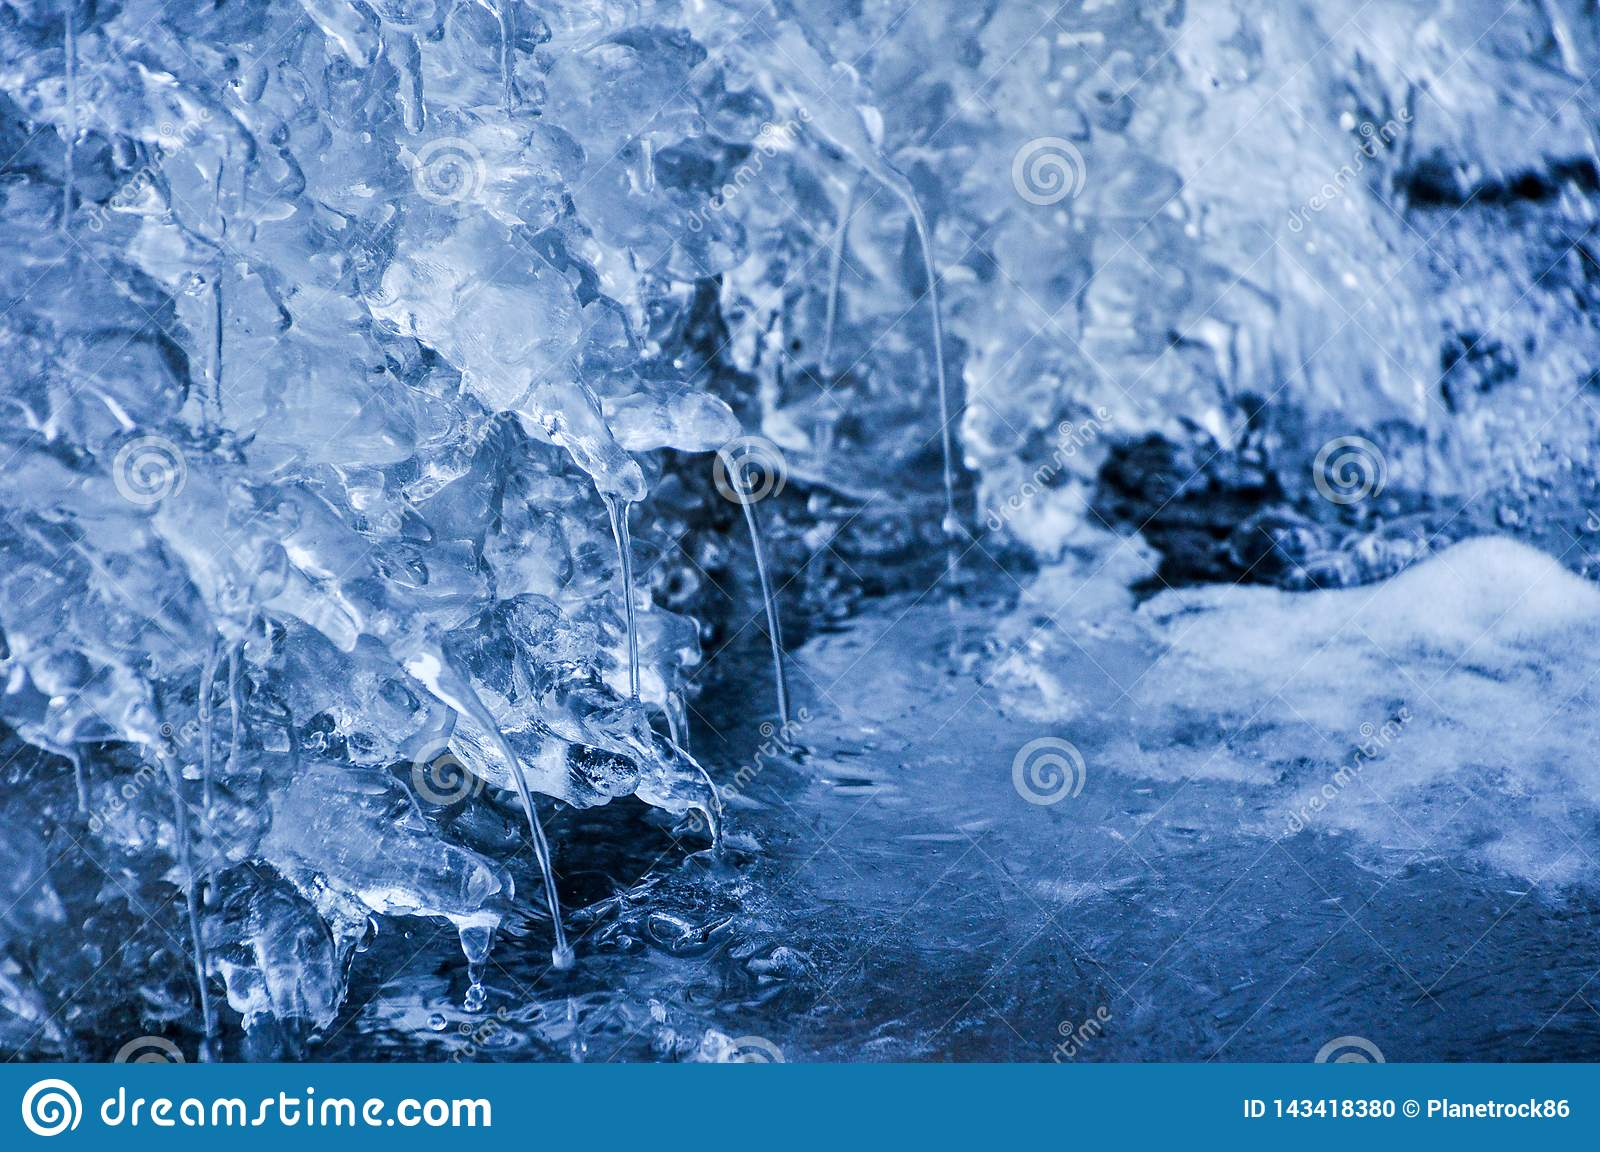 Frozen river and dripping water